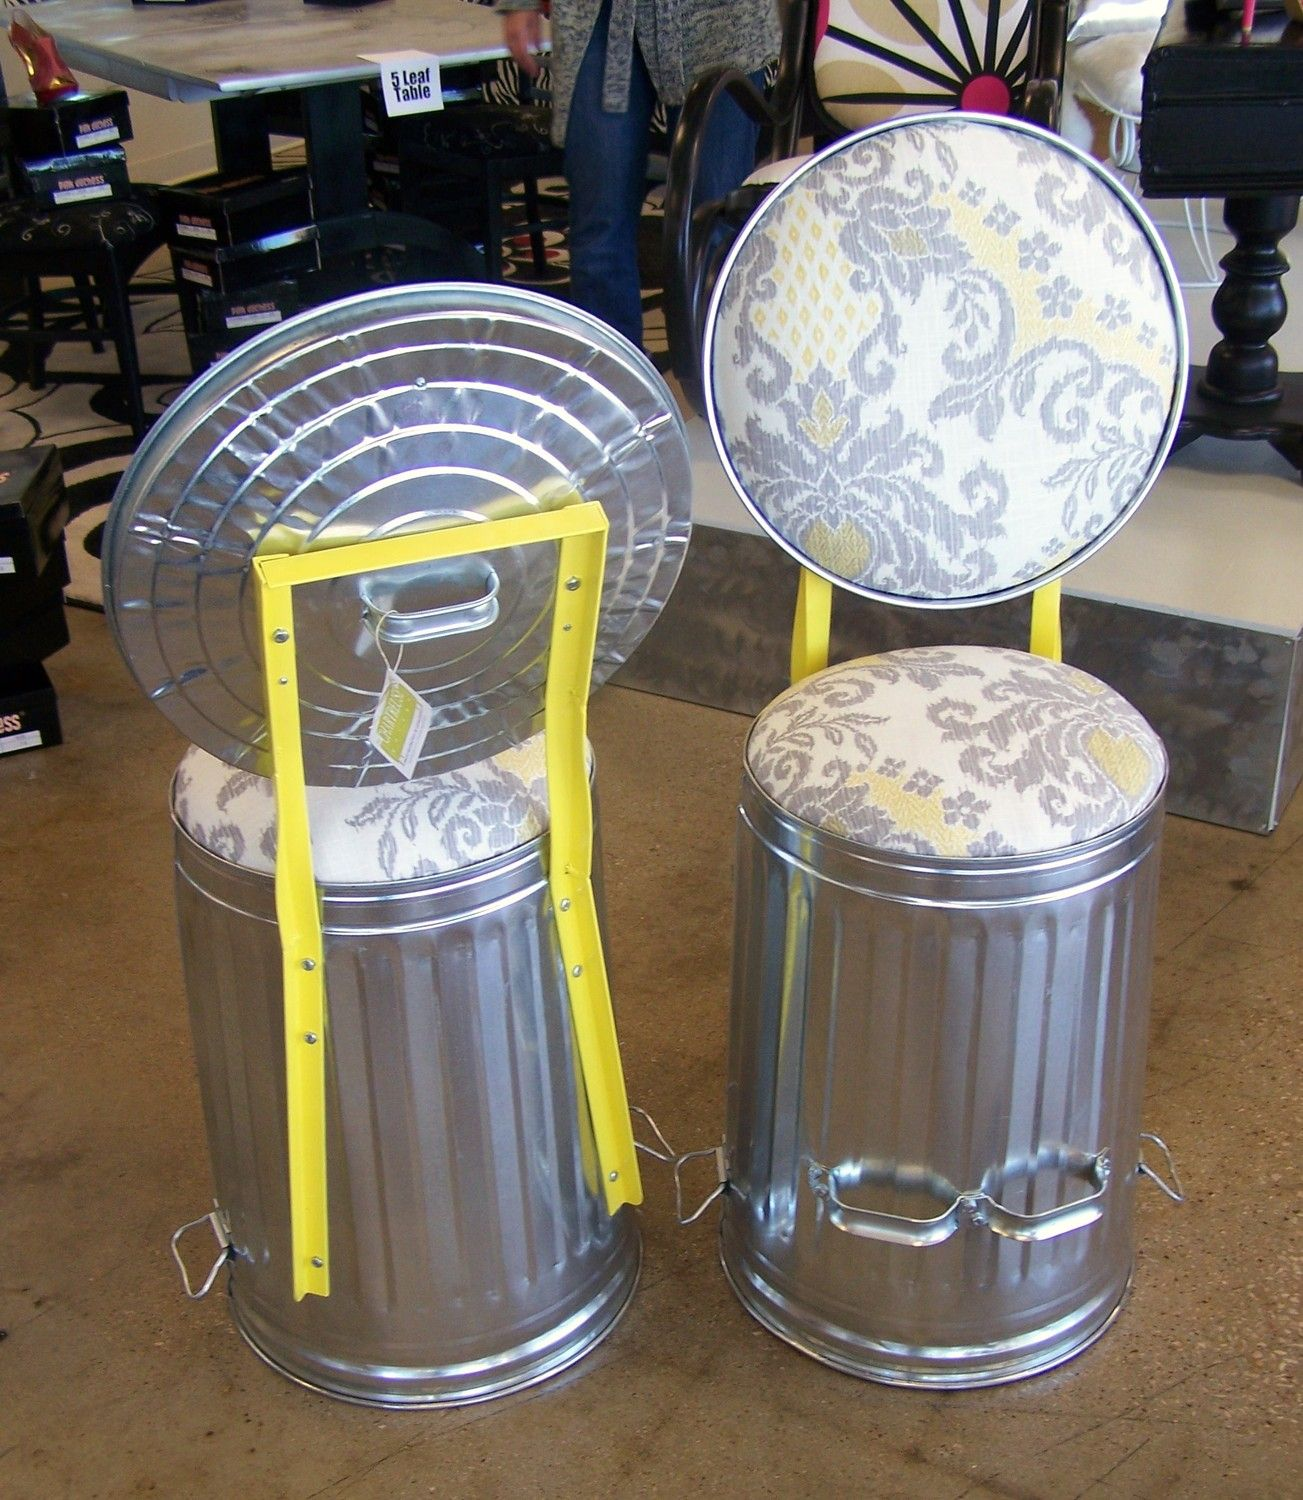 Stool - The Chartreuse Garage Trash Cans Jack u0026 Zenny by jrpummel. What a creative & Stool - The Chartreuse Garage Trash Cans Jack u0026 Zenny by jrpummel ... islam-shia.org